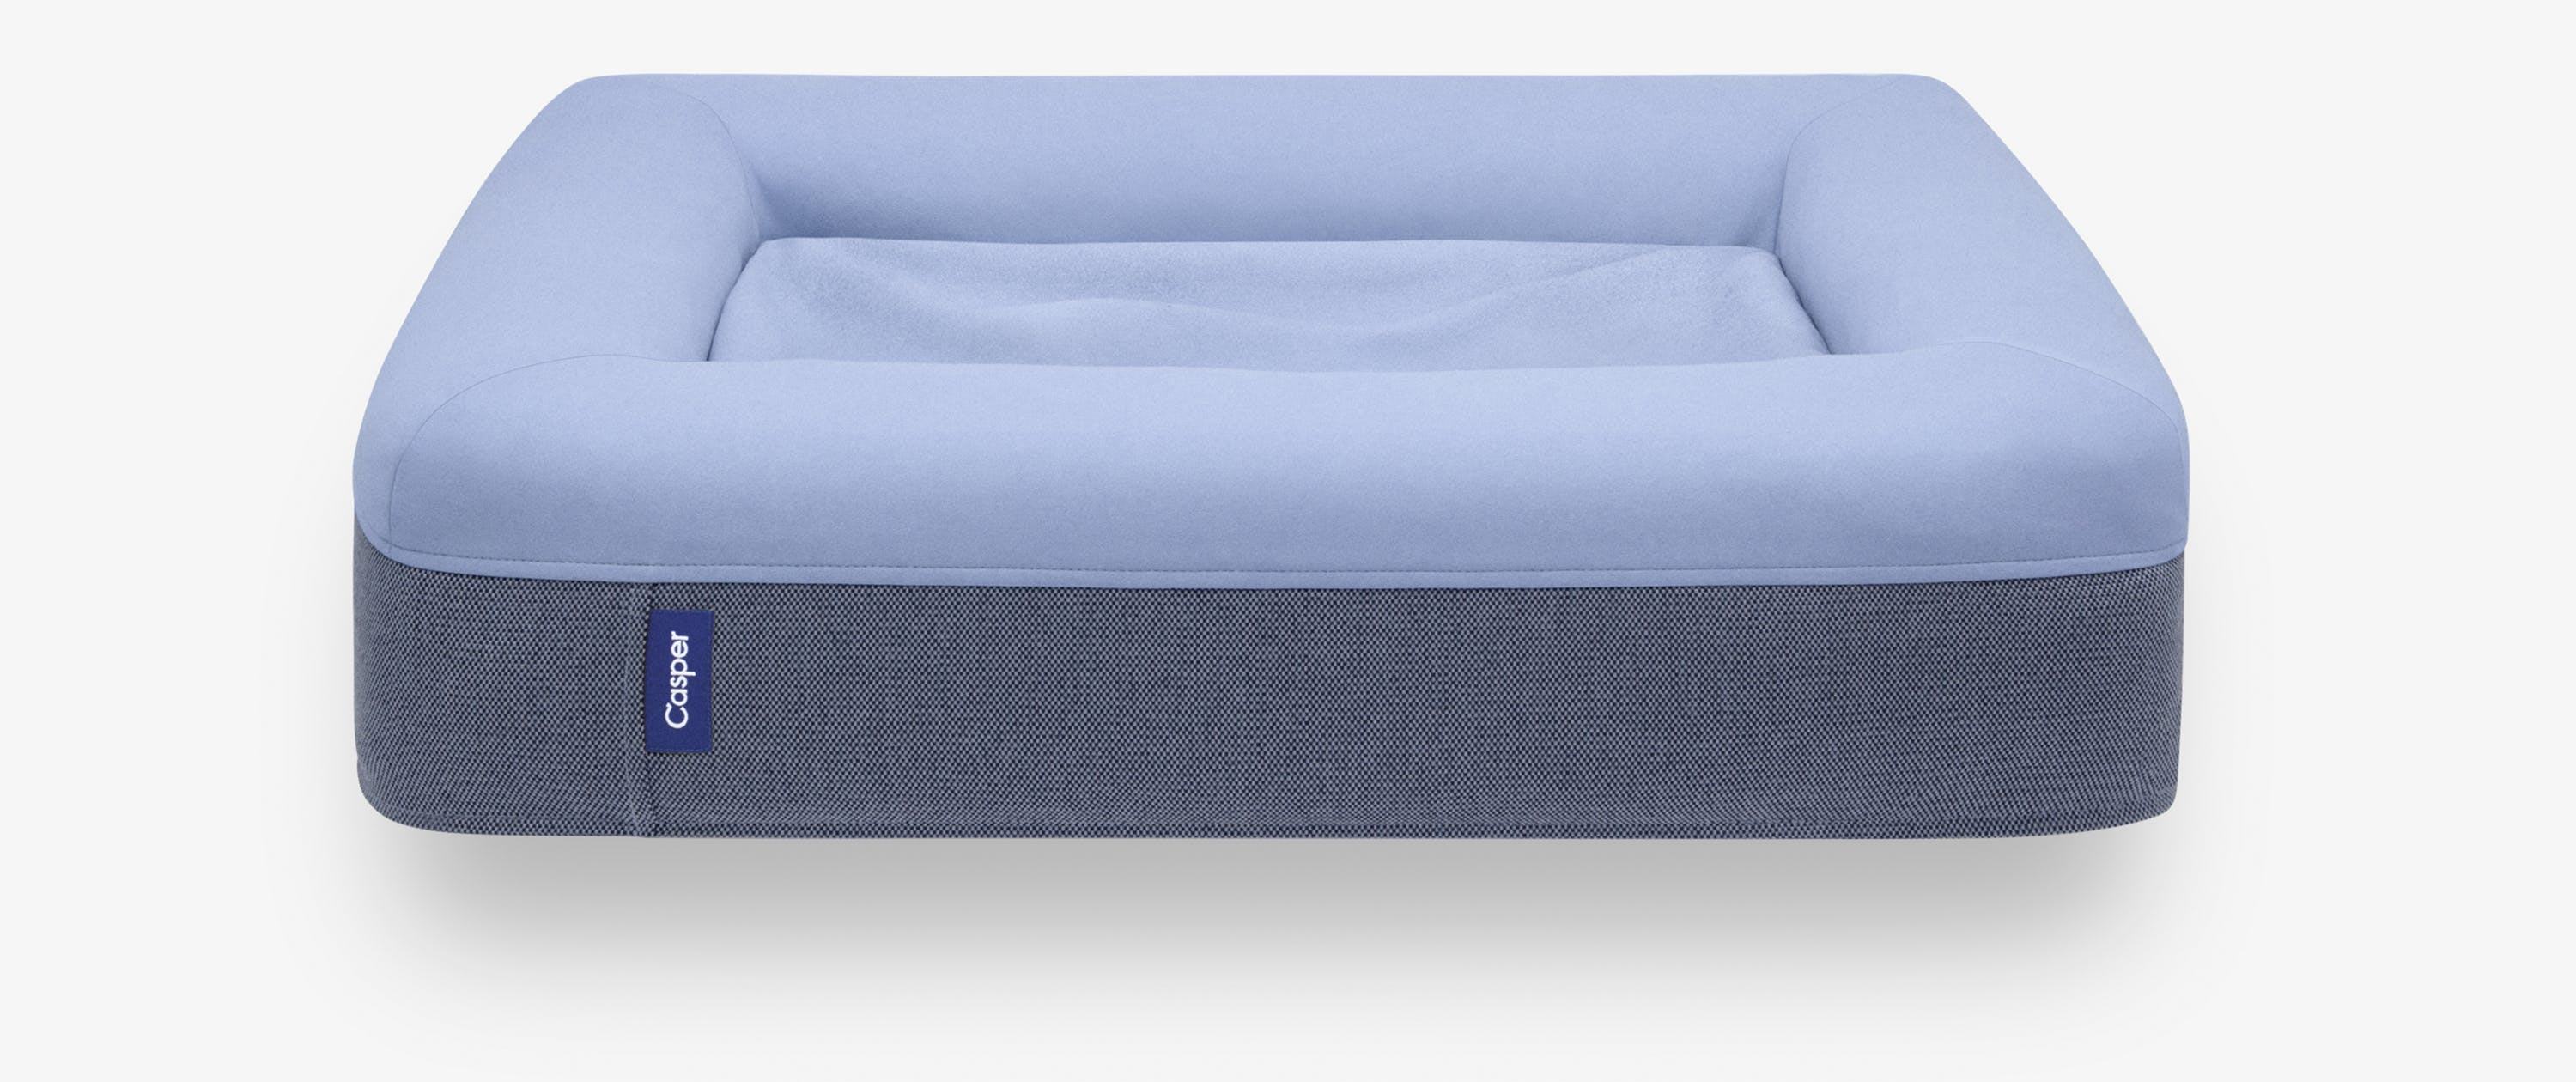 The blue Casper Dog Bed